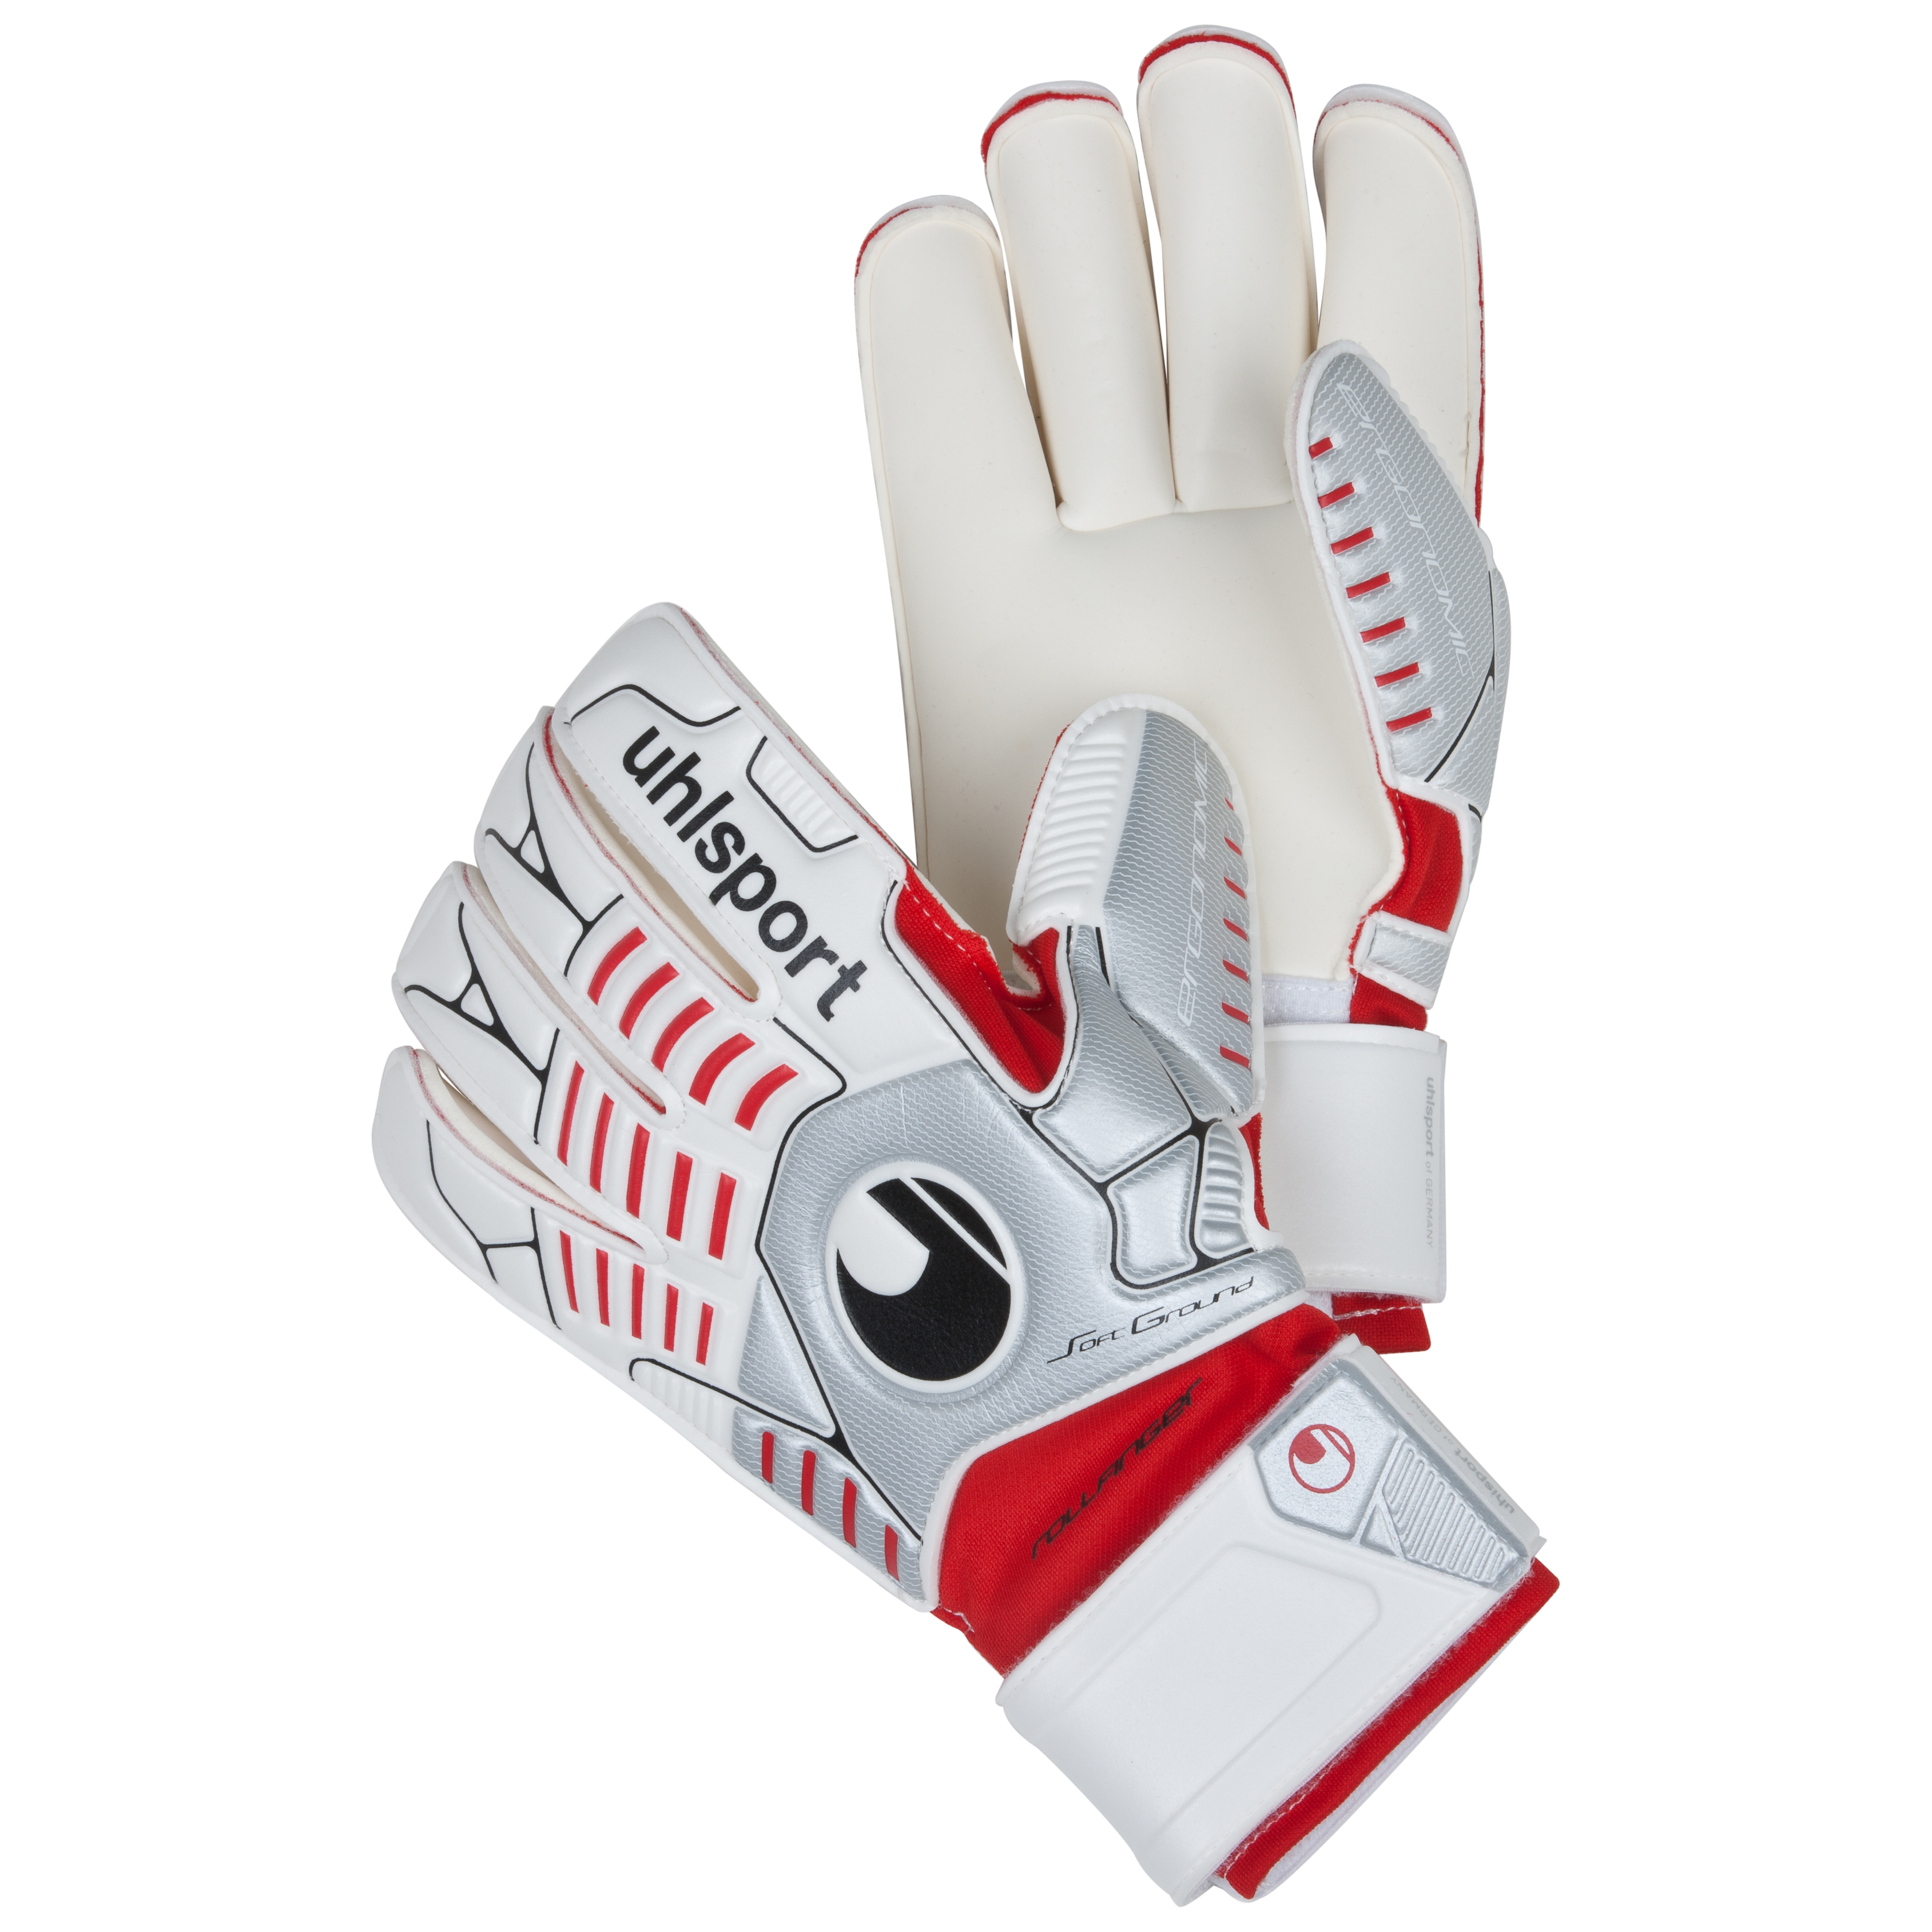 Uhlsport Ergonomic Soft Rollfinger Goalkeeper Gloves - White/Silver/Red